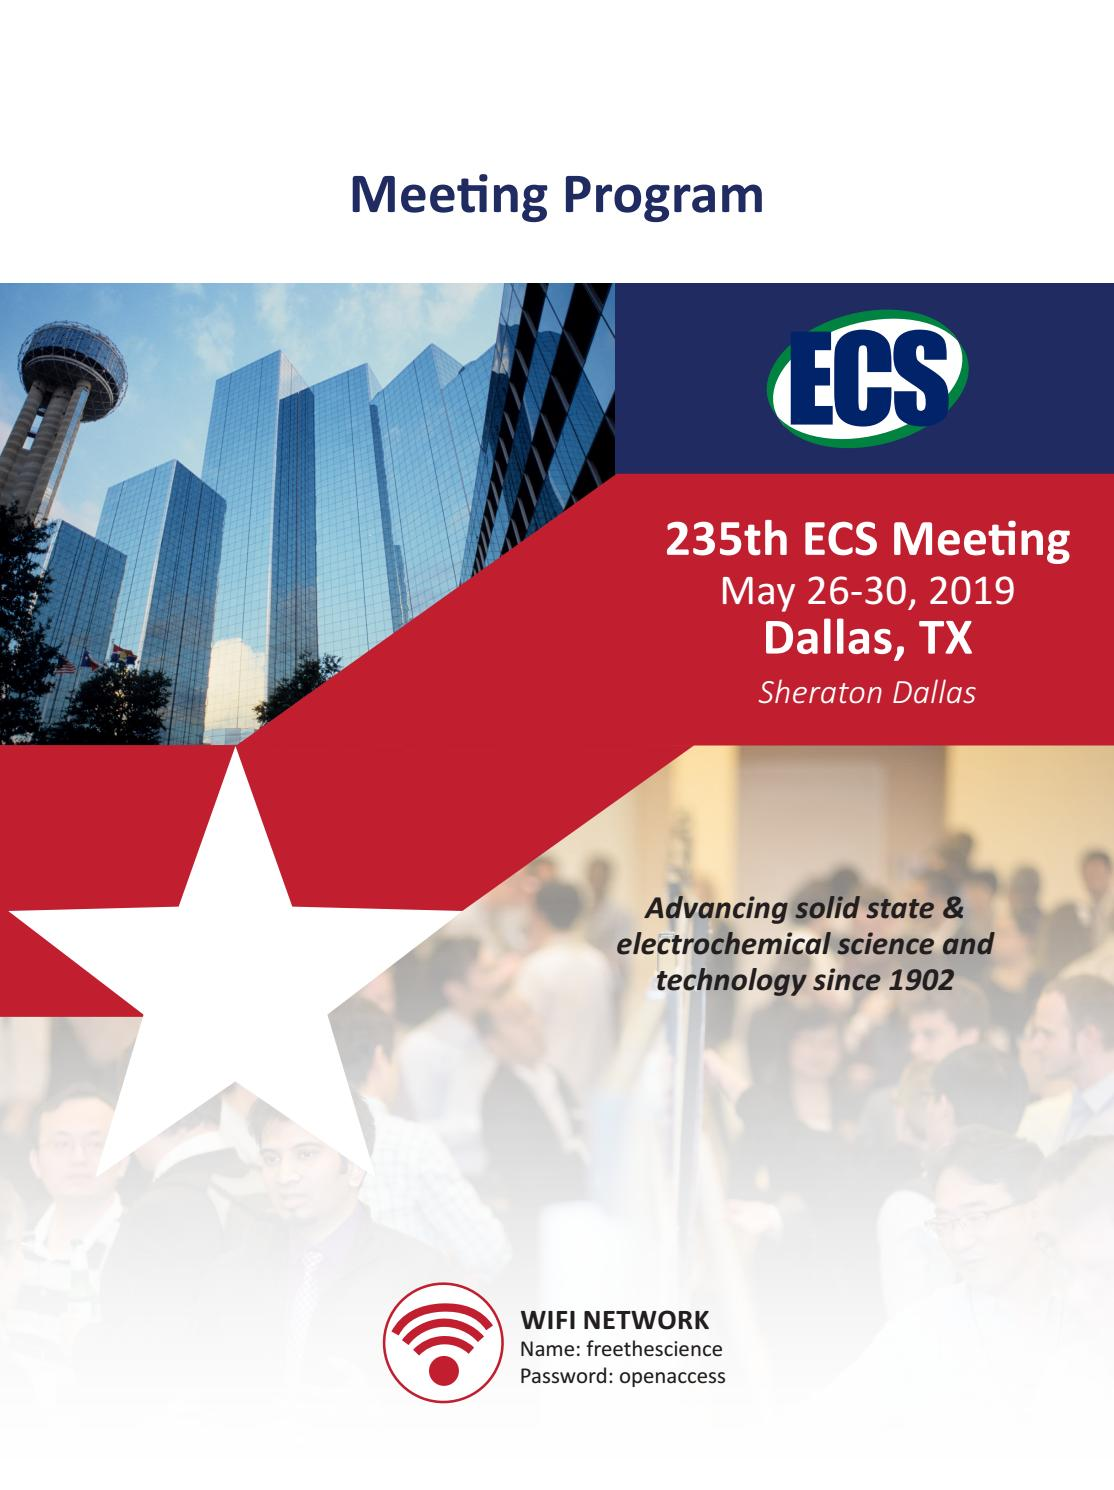 235th ECS Meeting, Dallas, TX by The Electrochemical Society